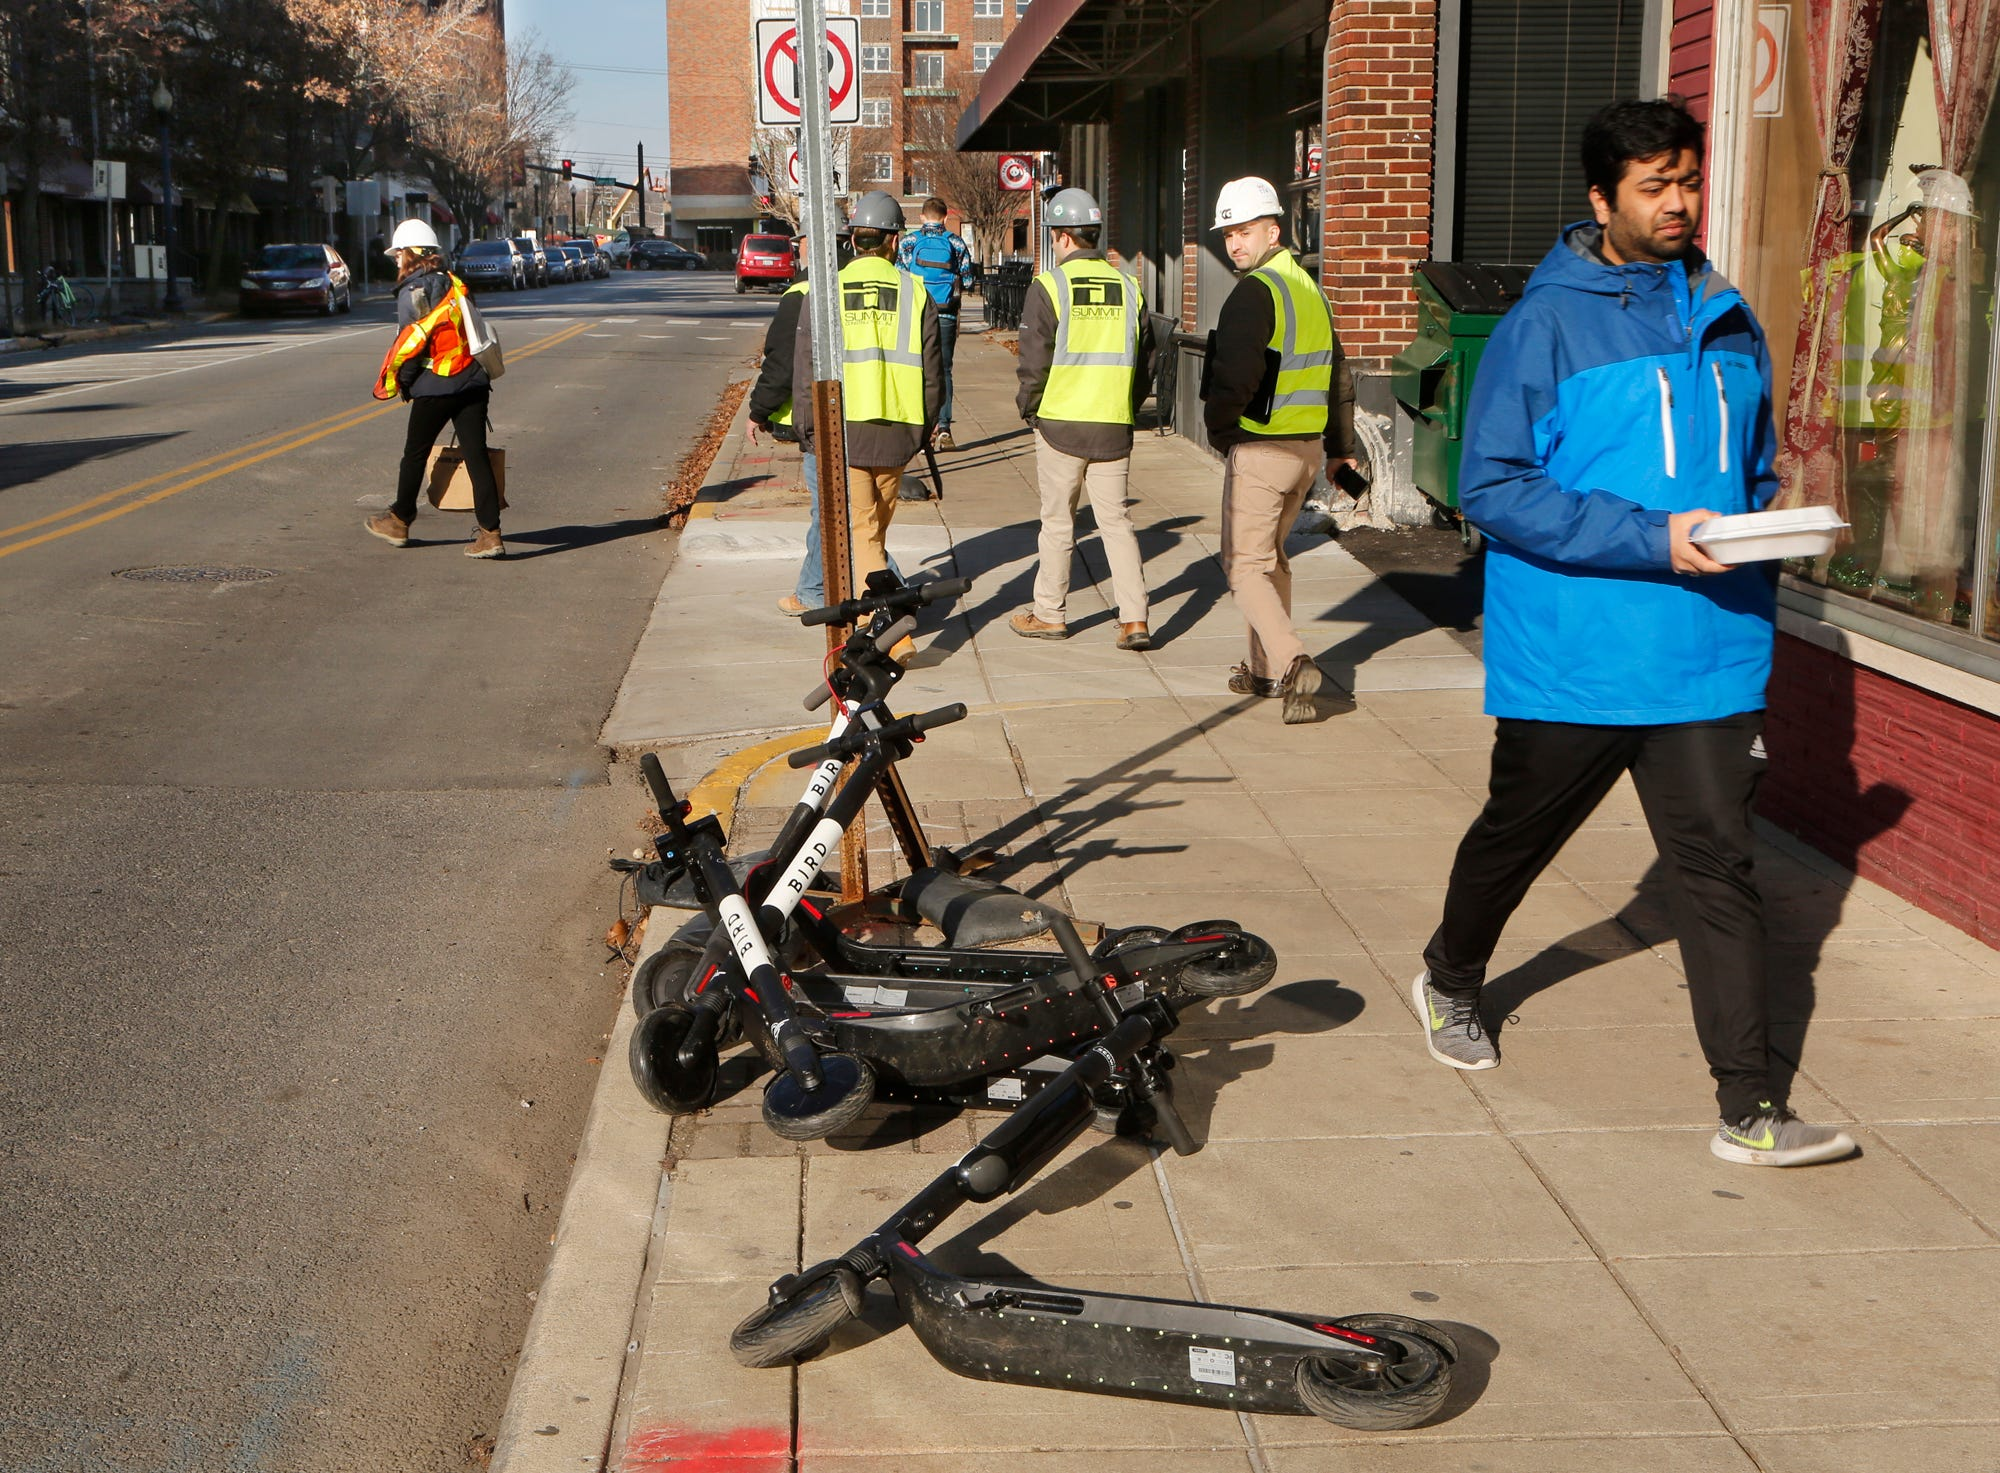 BIRD electric scooters are piled up on the sidewalk in front of Khana Khazana Grill Tuesday, December 11, 2018, at 108 Northwestern Avenue in West Lafayette. West Lafayette started towing the scooters Monday after complaints that they were clogging sidewalks.